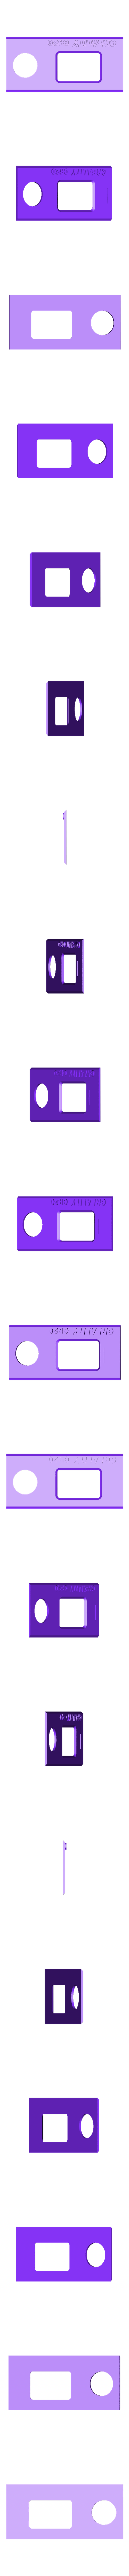 CREALITY_CR20_LCD_COVER.stl Download free STL file CR20 / CR20 PRO LCD COVER • 3D printer object, GREGCAR_3DPrinting